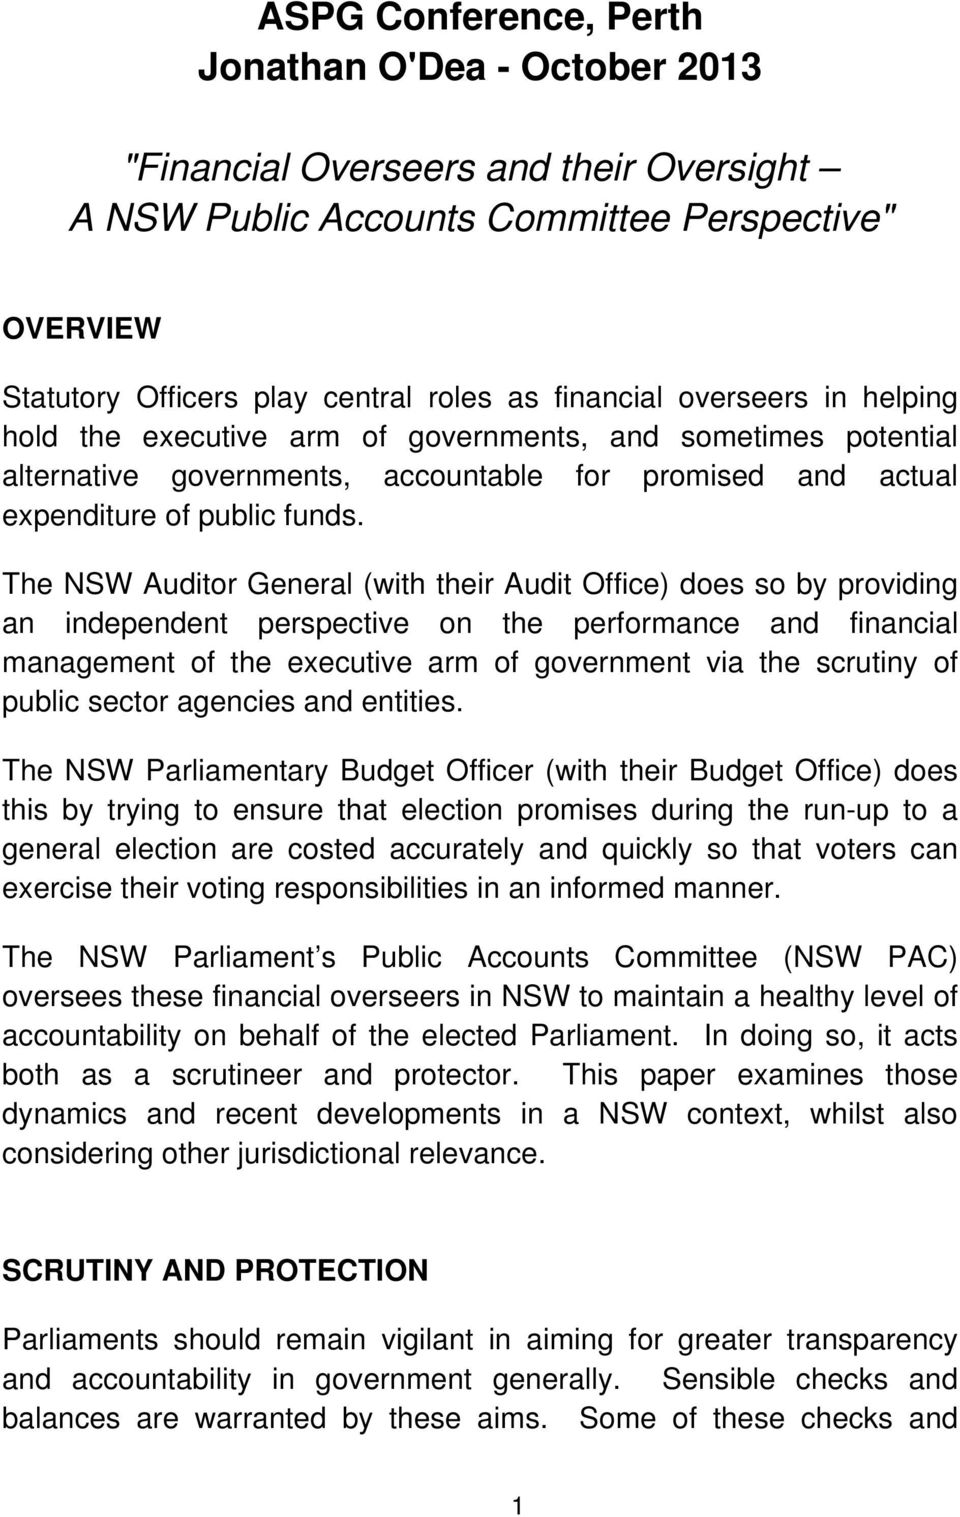 The NSW Auditor General (with their Audit Office) does so by providing an independent perspective on the performance and financial management of the executive arm of government via the scrutiny of